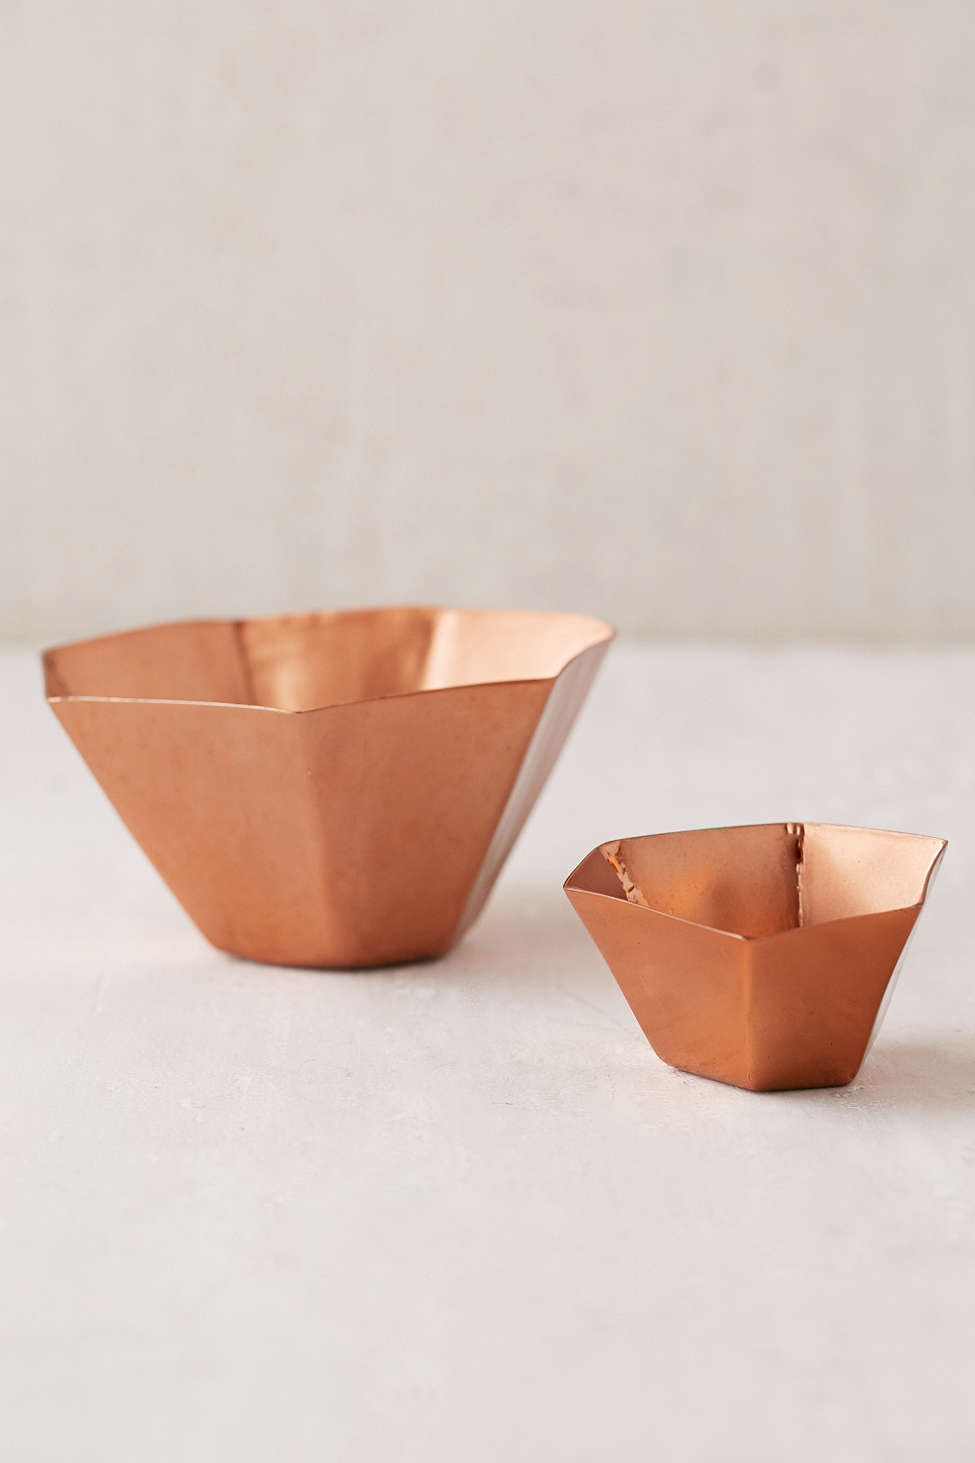 Copper hexagon dishes from Urban Outfitters